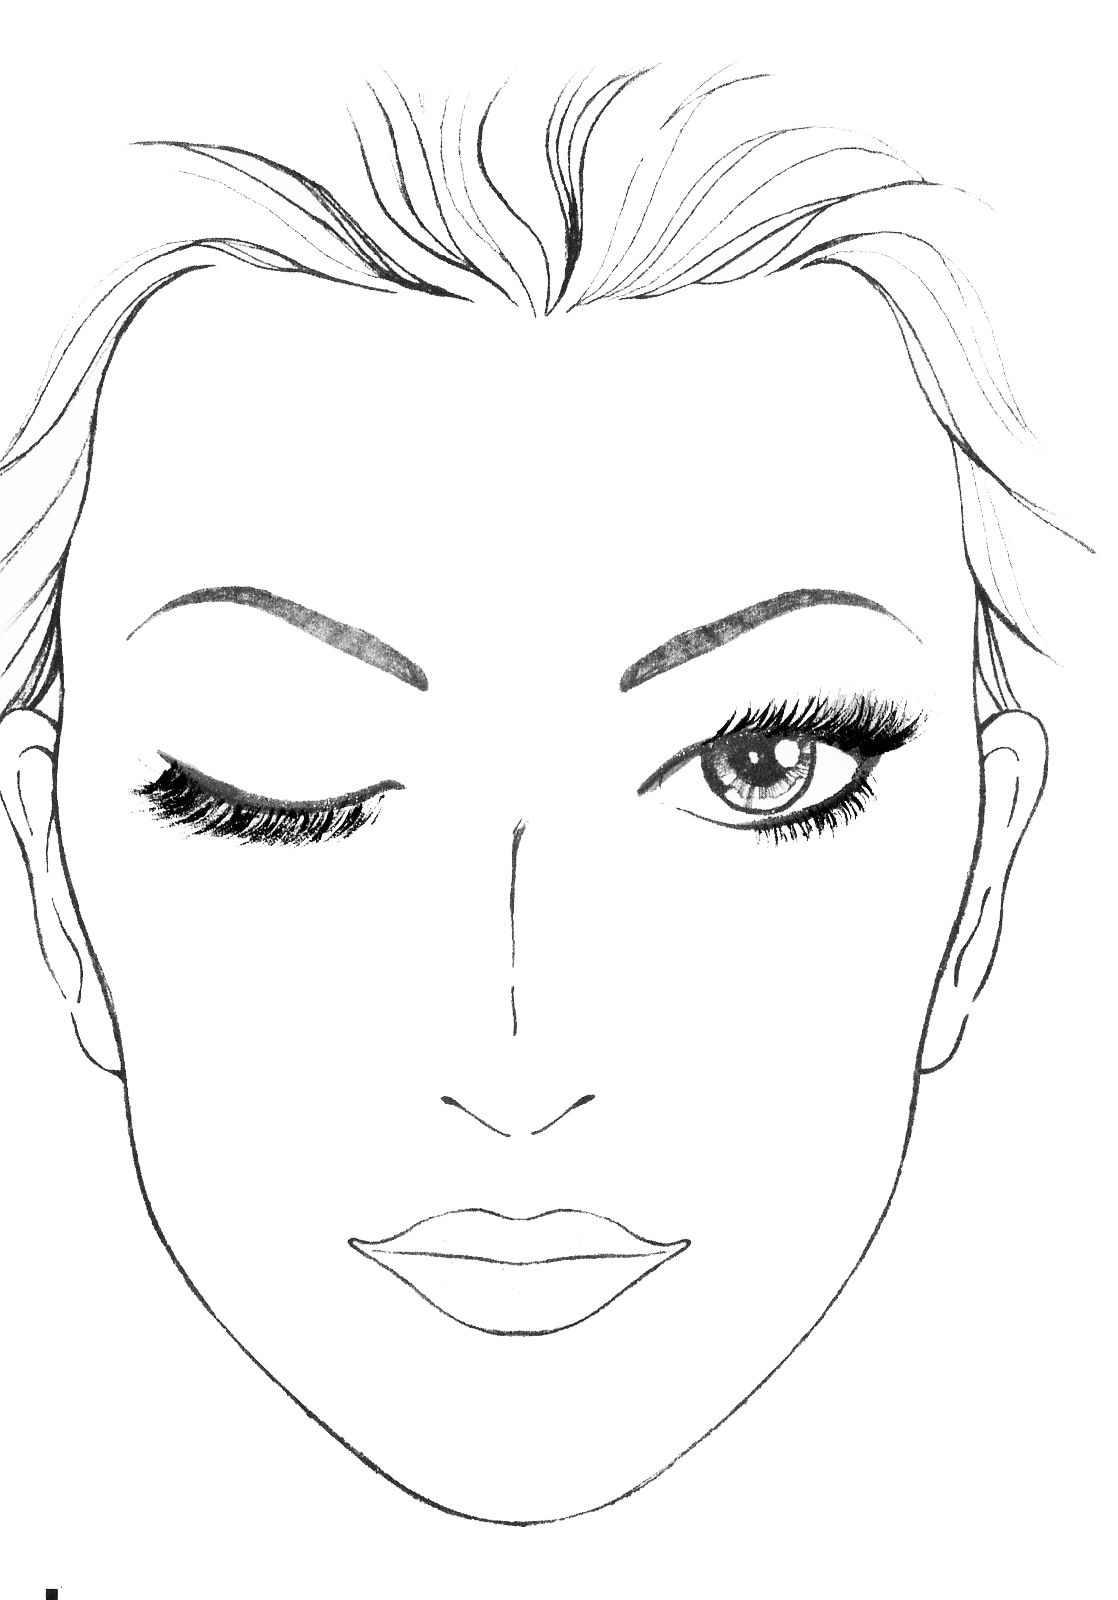 pin by tarn rudge on makeup sketch pinterest face charts face and makeup. Black Bedroom Furniture Sets. Home Design Ideas